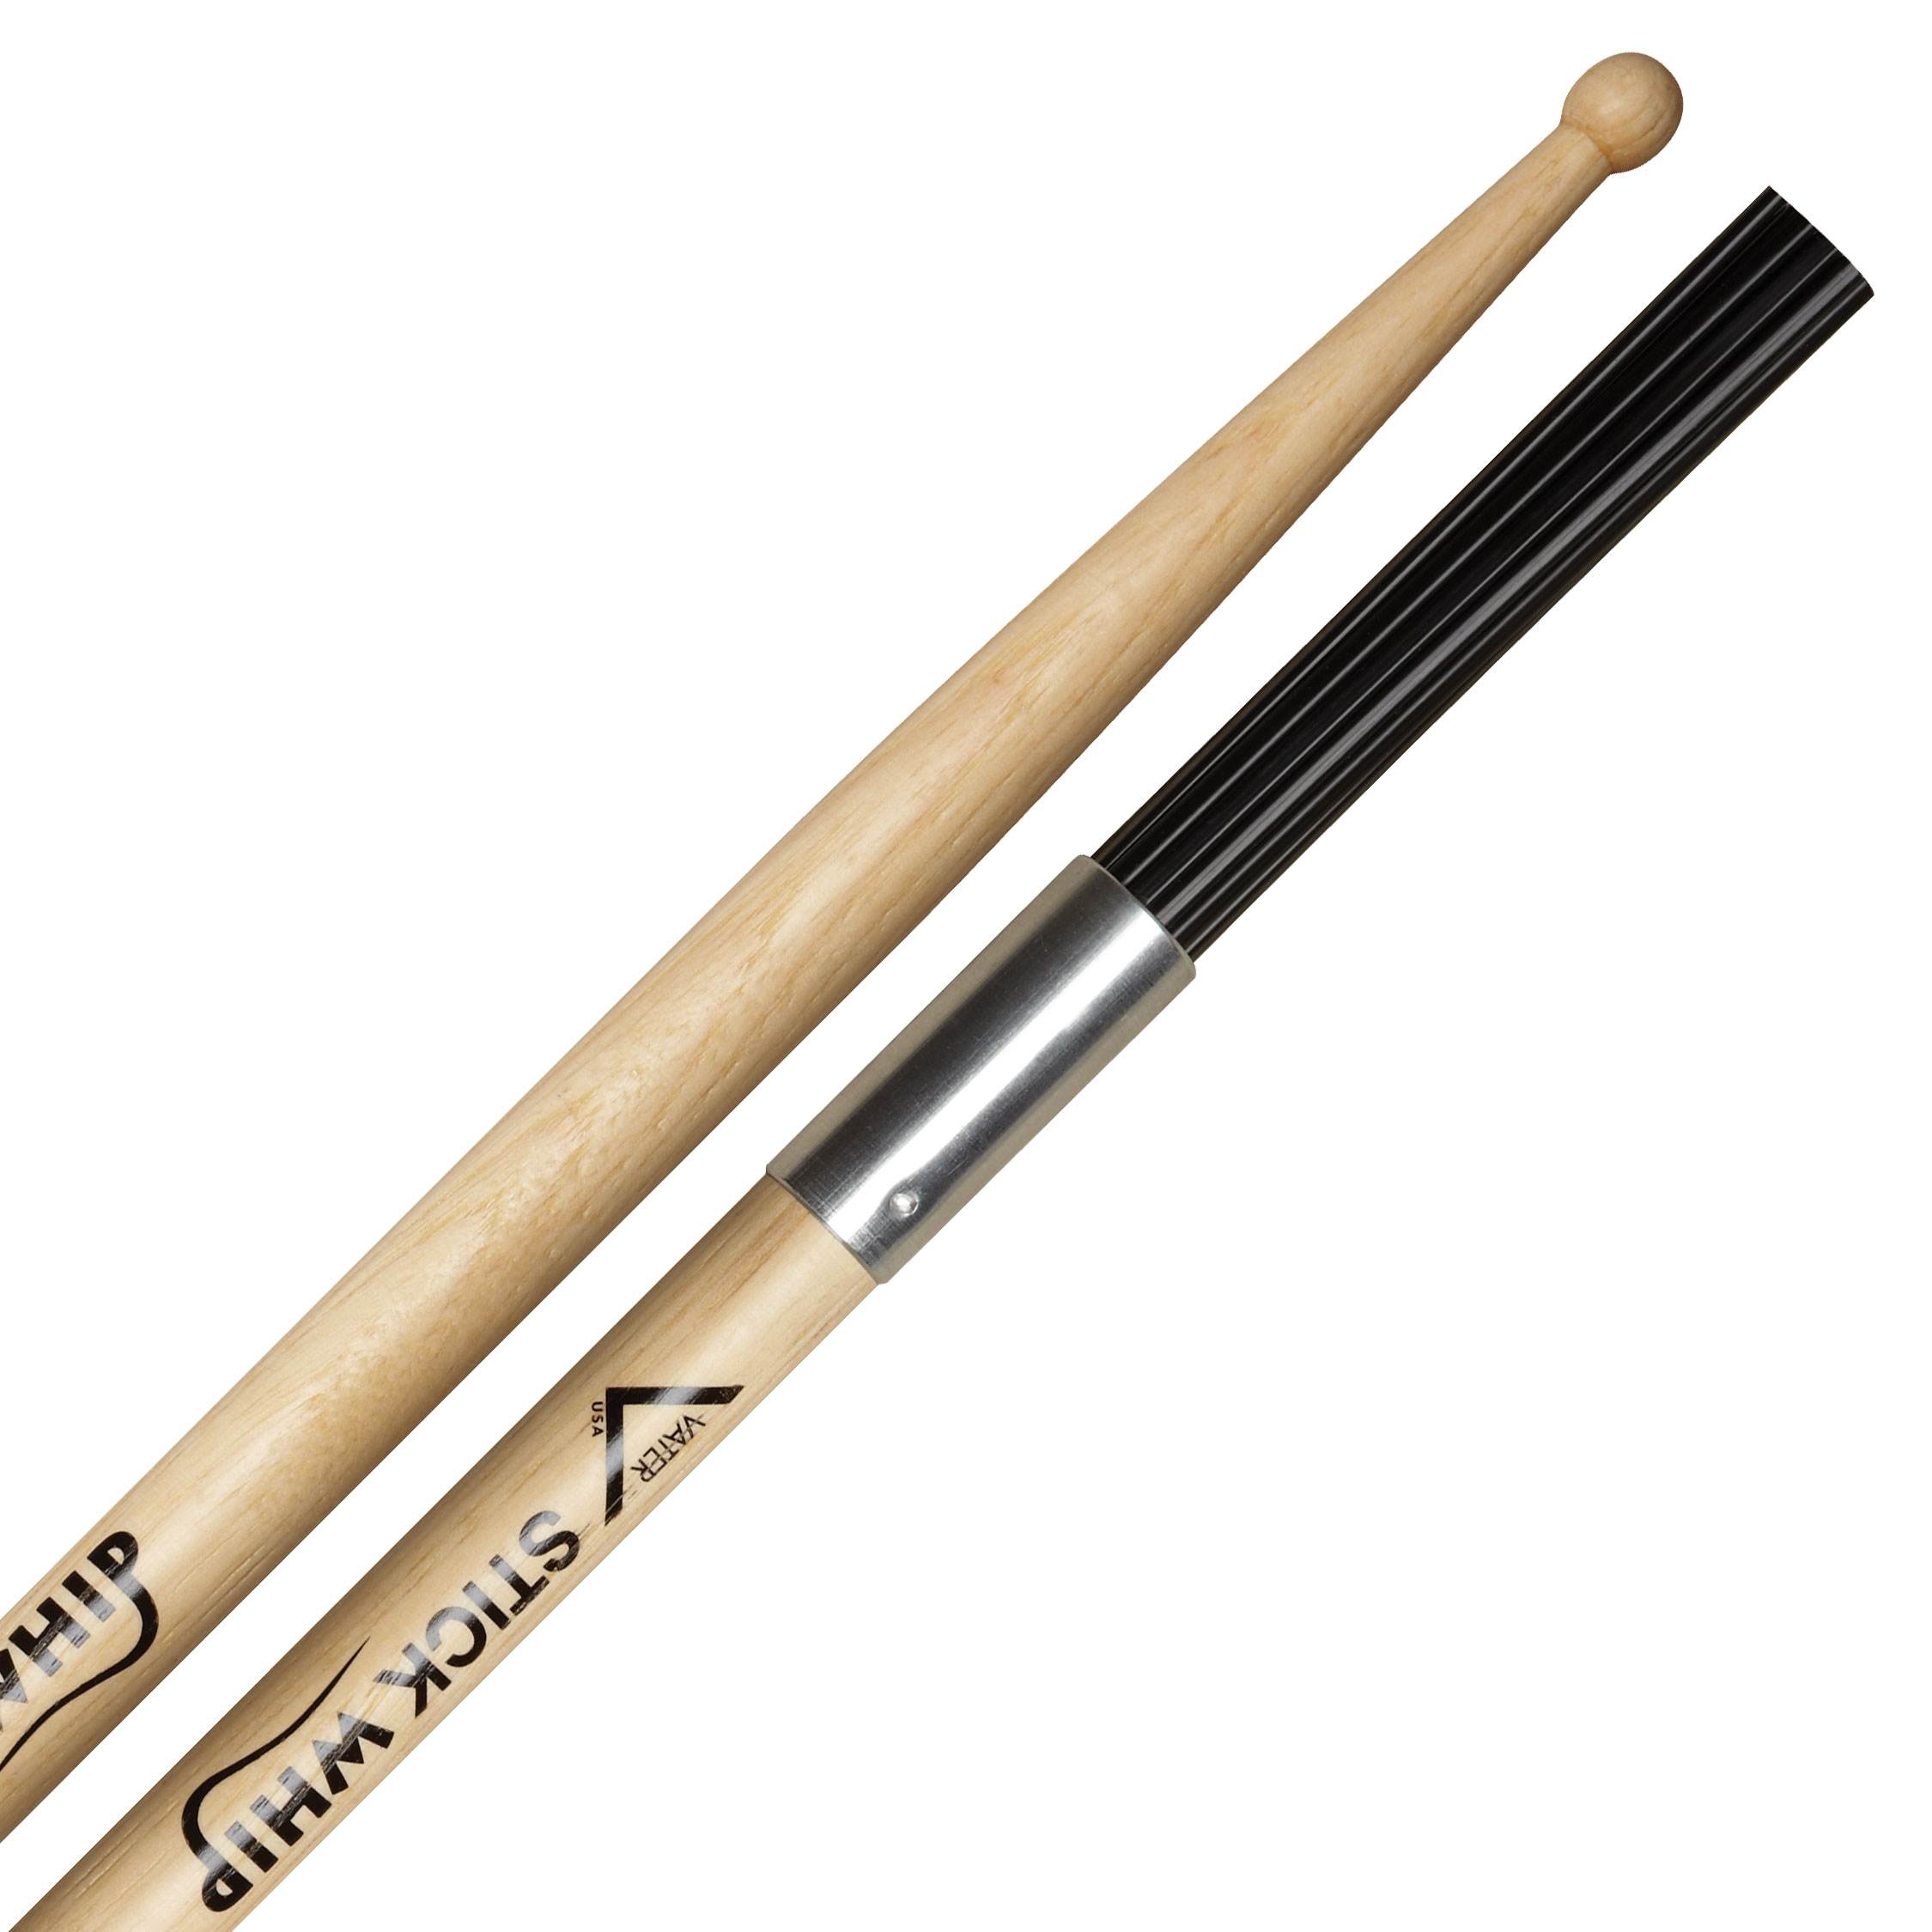 Vater Stick-Whips Hybrid Bundle Sticks